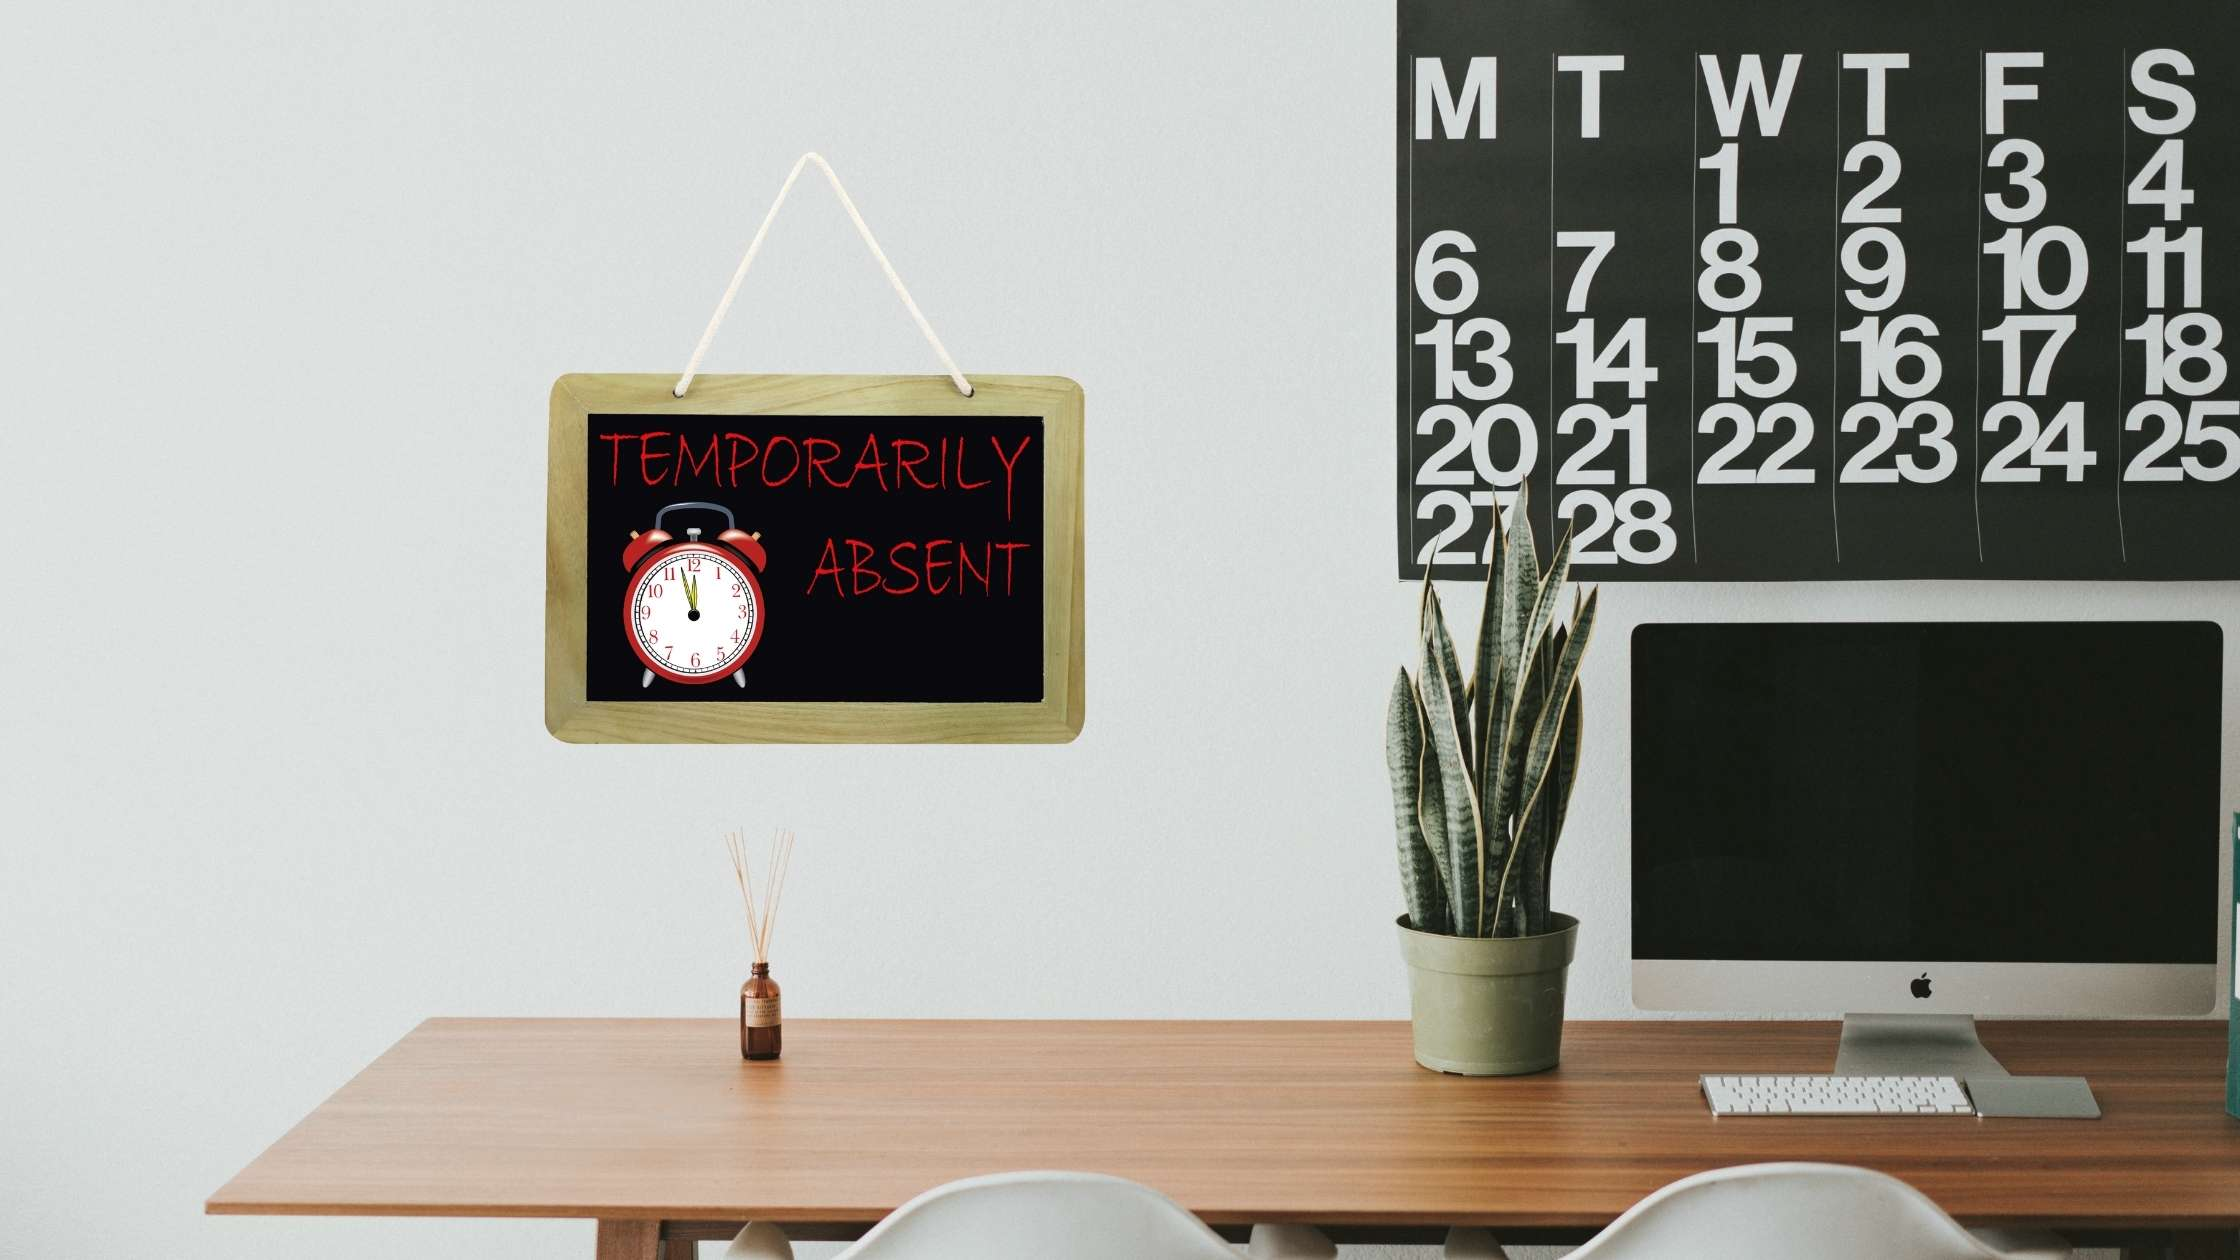 absenteeism policy for remote employees